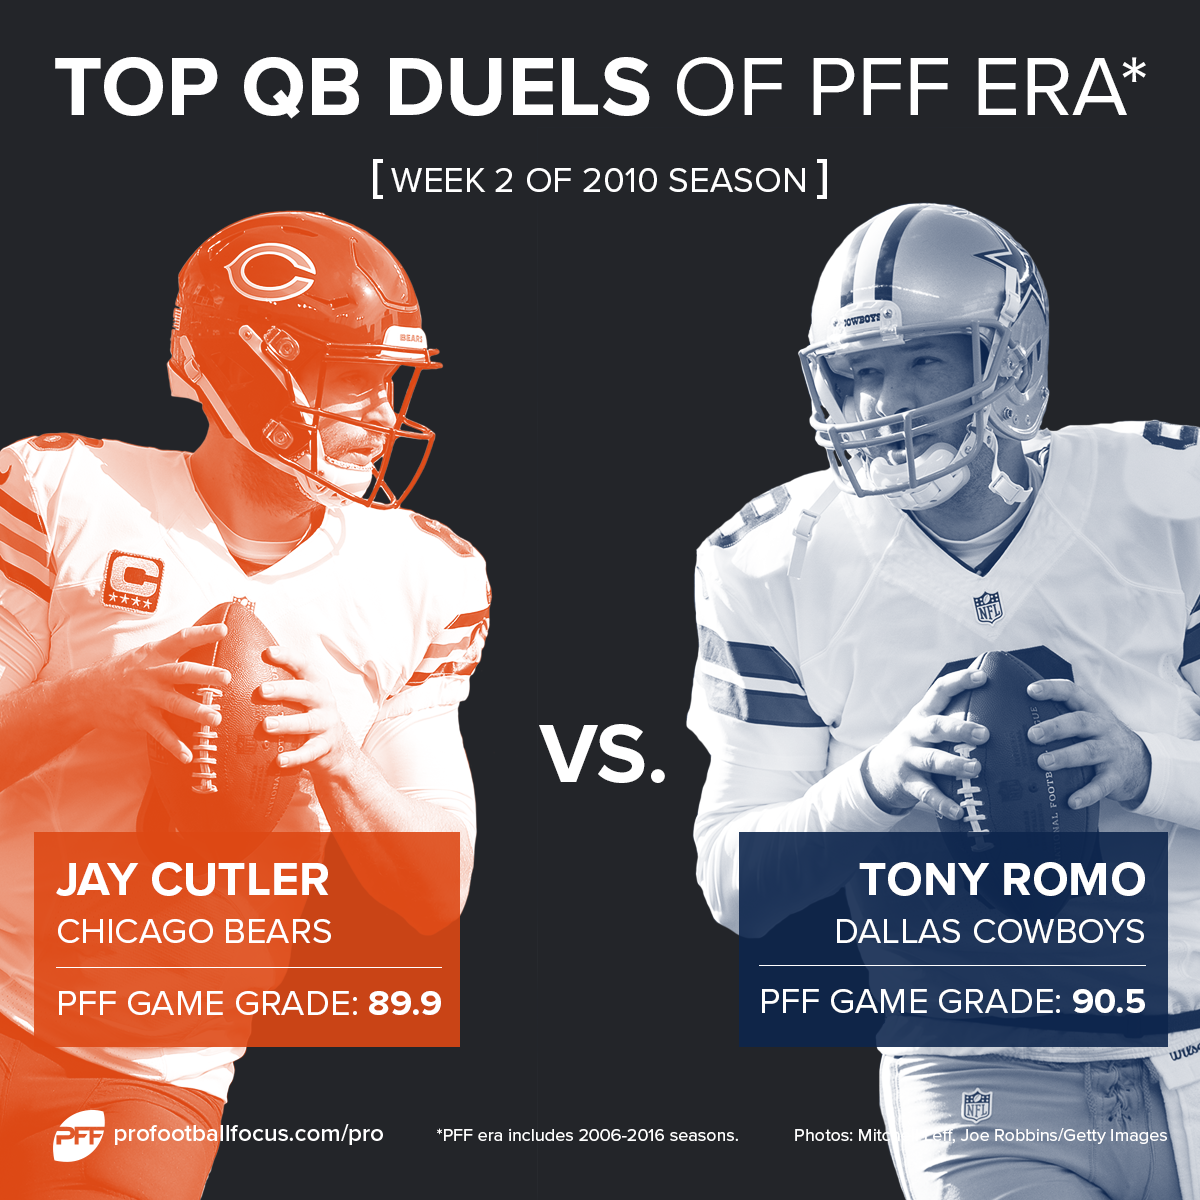 Jay Cutler and Tony Romo